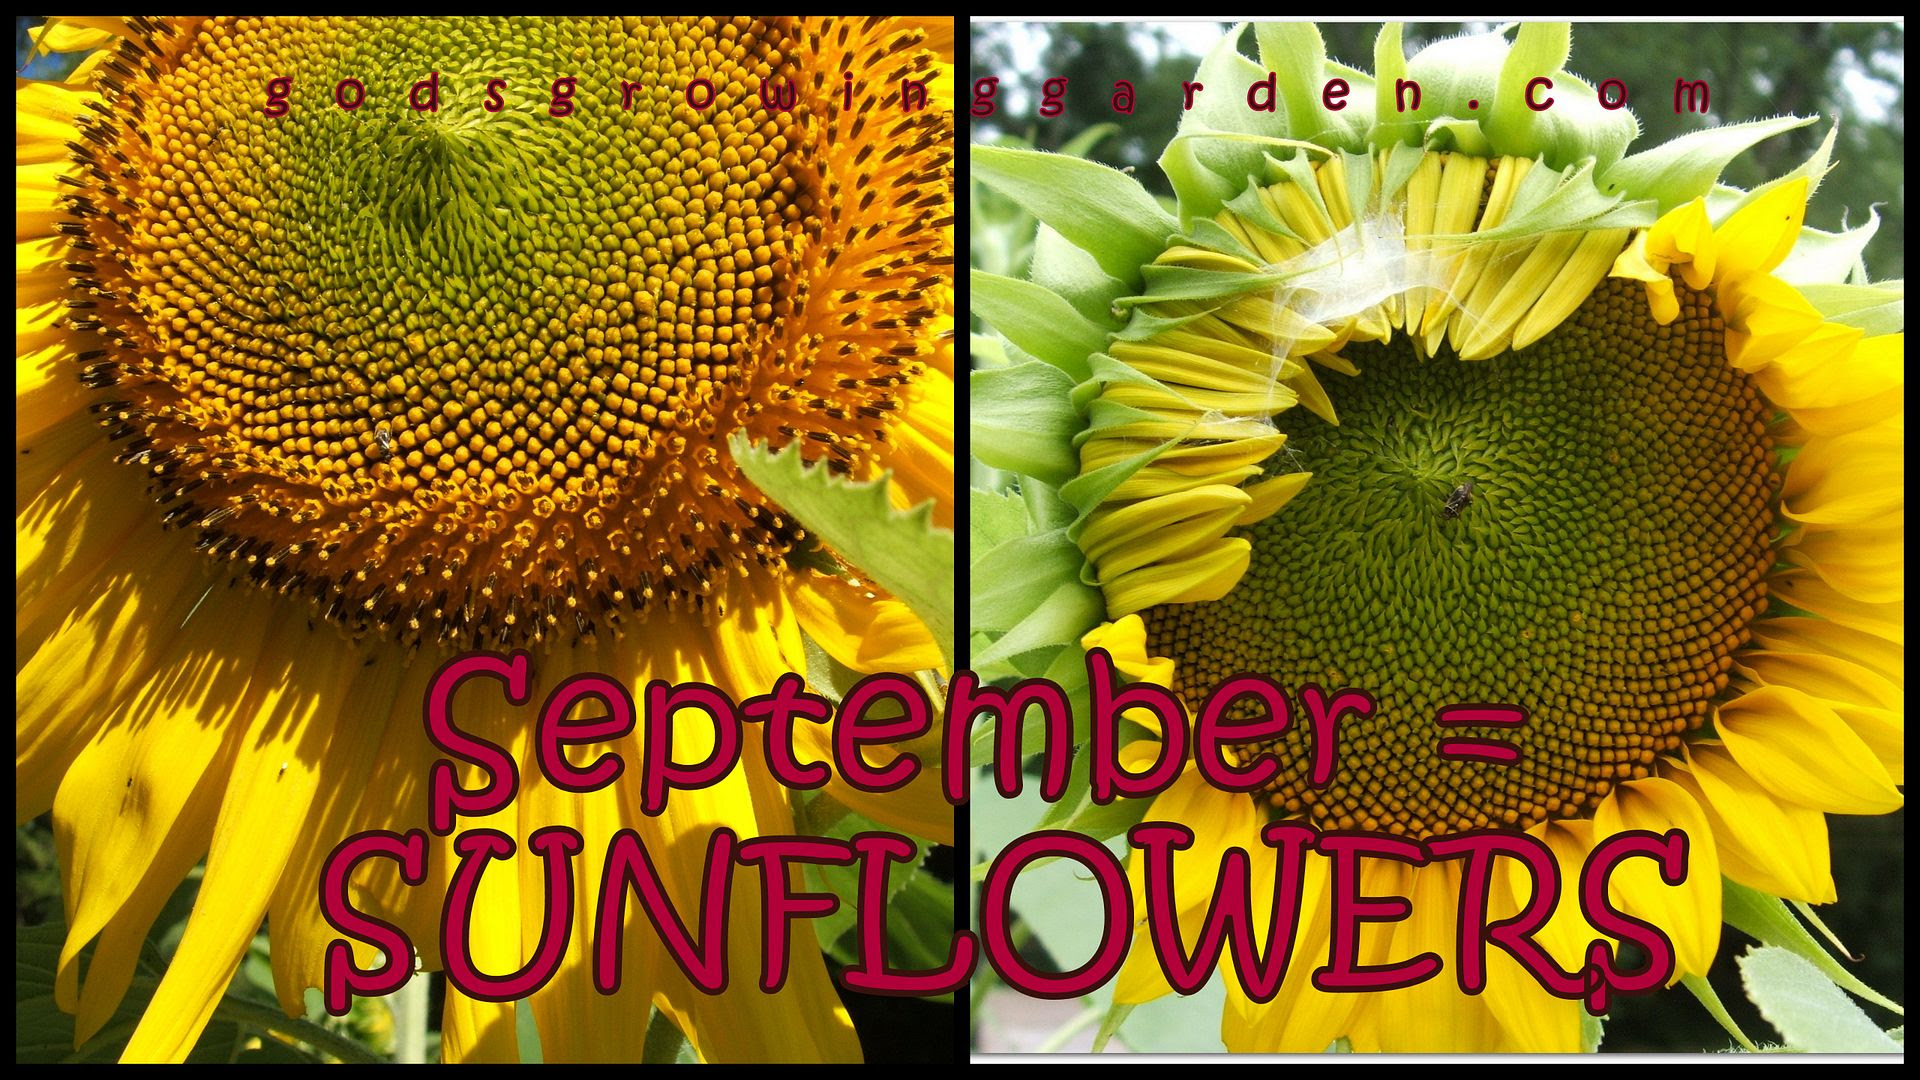 sunflowers by Angie Ouellette-Tower for godsgrowinggarden.com photo 2013-09-03_zps0eee164f.jpg